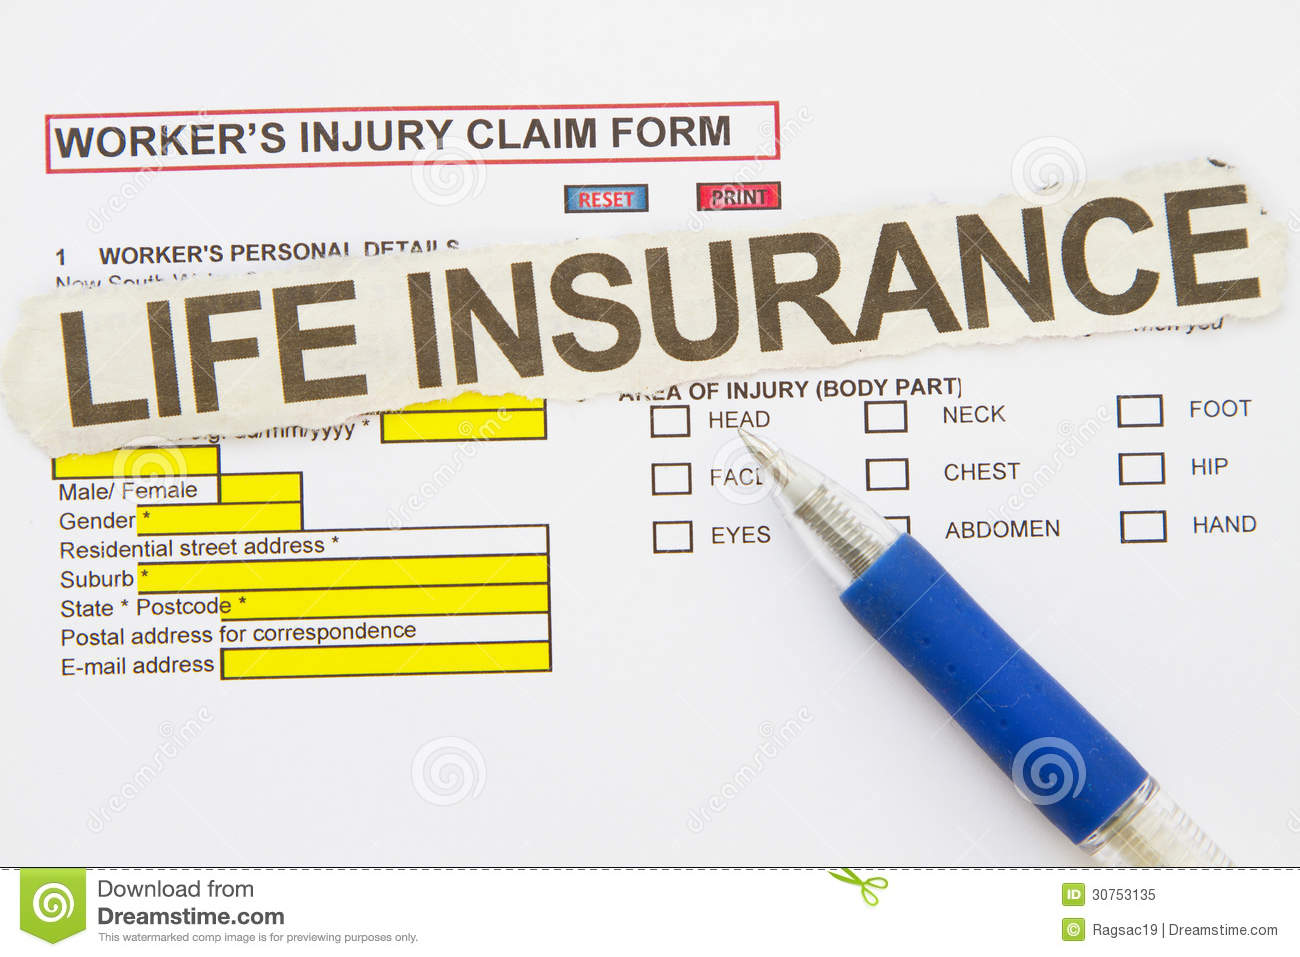 Aflac Accident Policy Pictures to Pin PinsDaddy – Aflac Claim Form